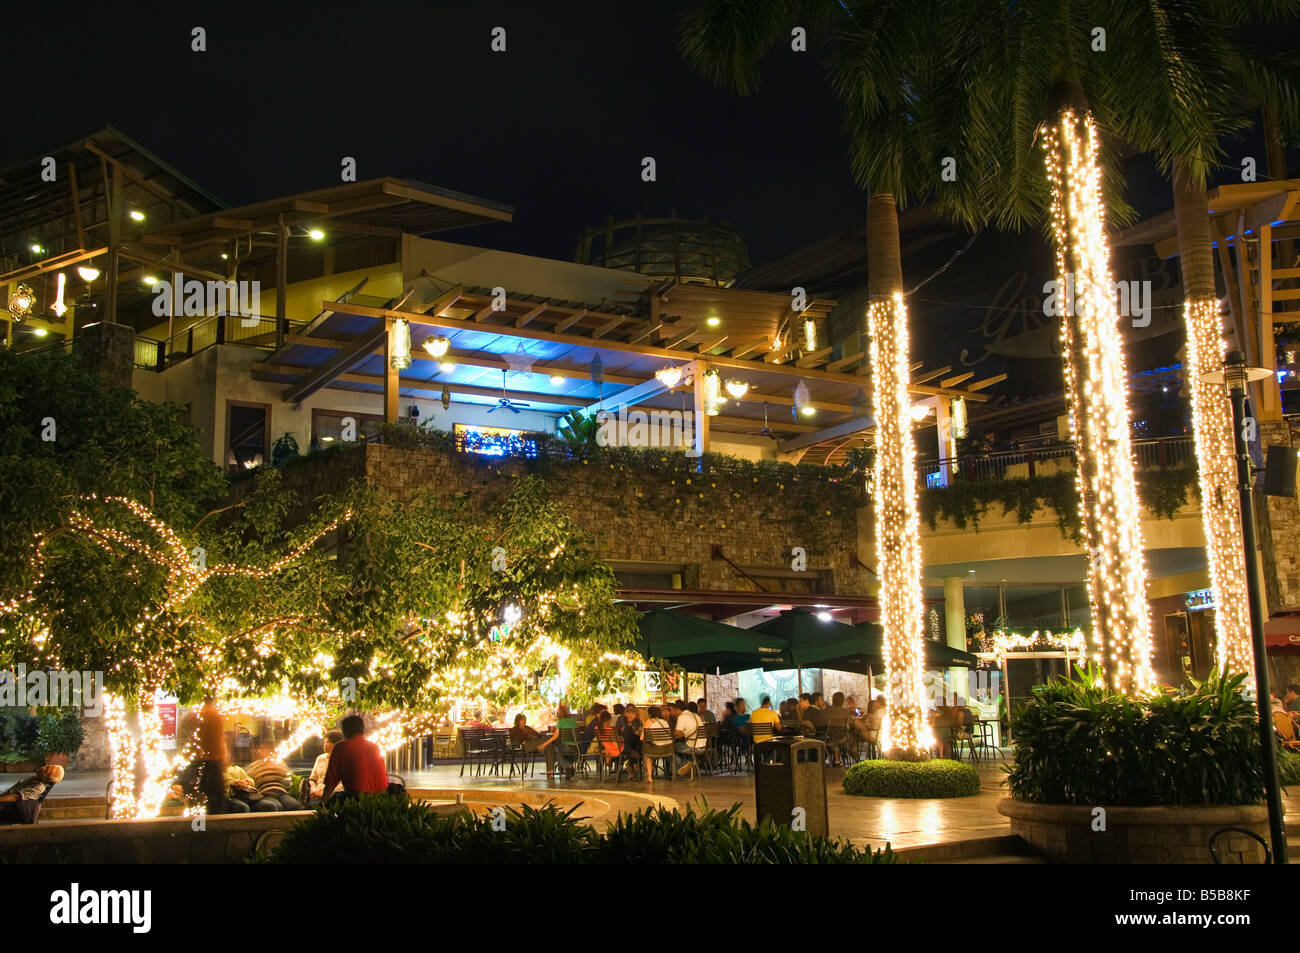 Greenbelt Entertainment Area with illuminated palm trees and outdoor dining, Makati District, Manila, Philippines, - Stock Image